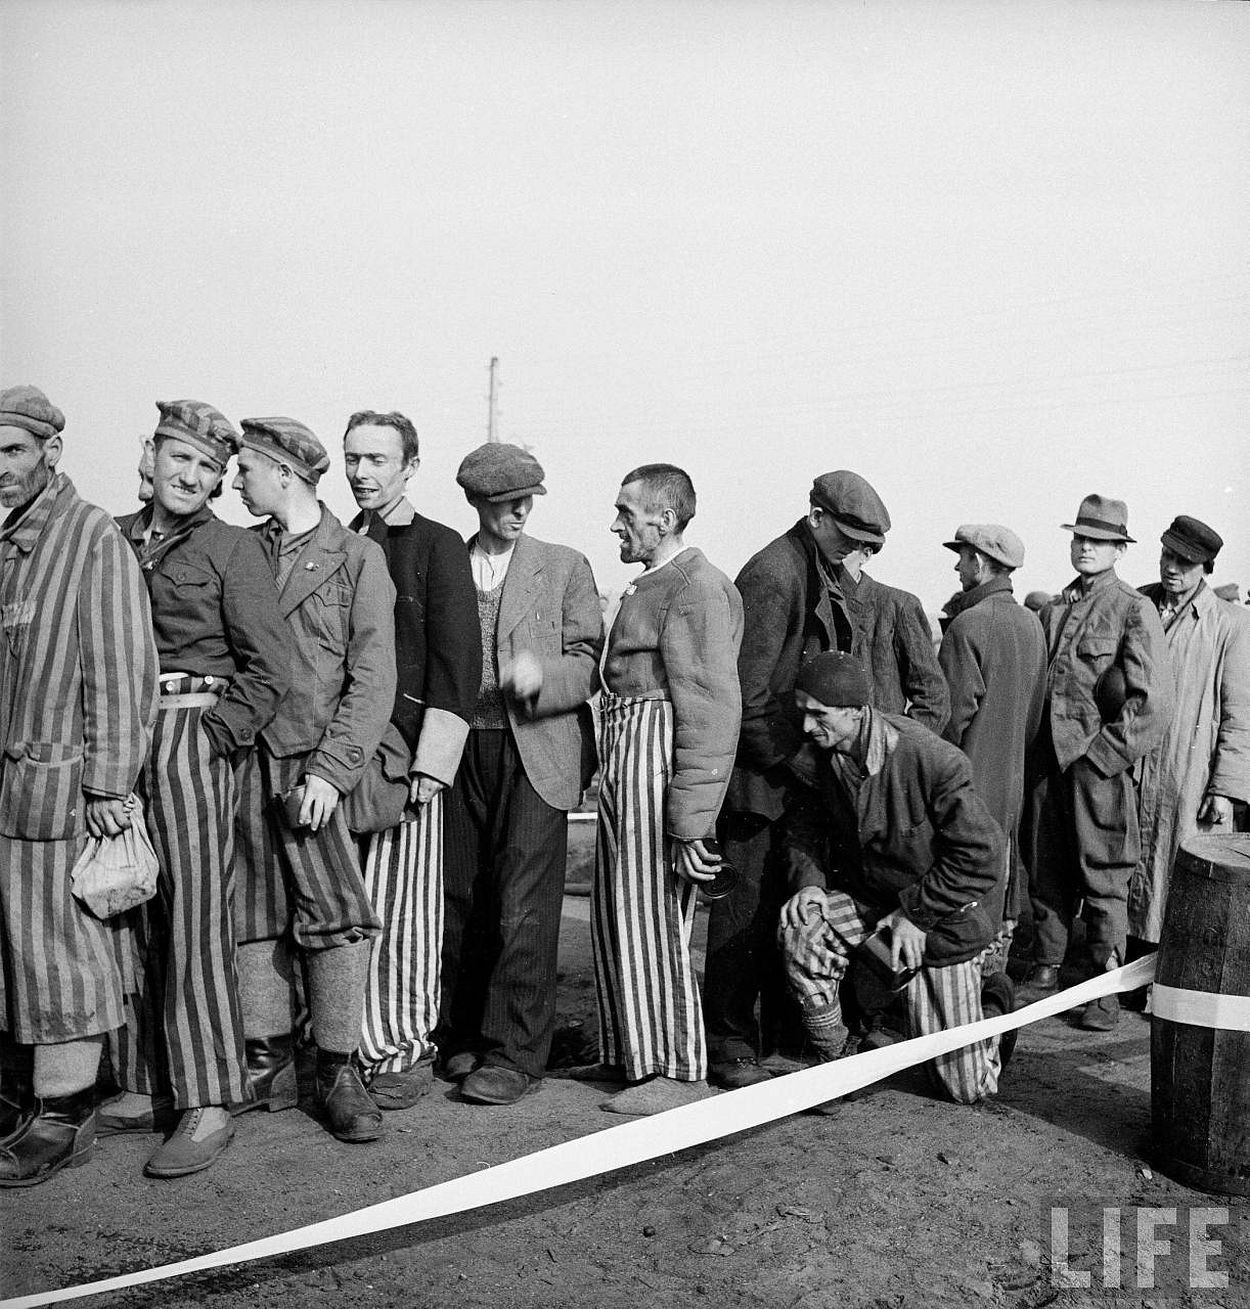 Newly liberated prisoners waiting on line for food at the Bergen Belsen concentration camp.